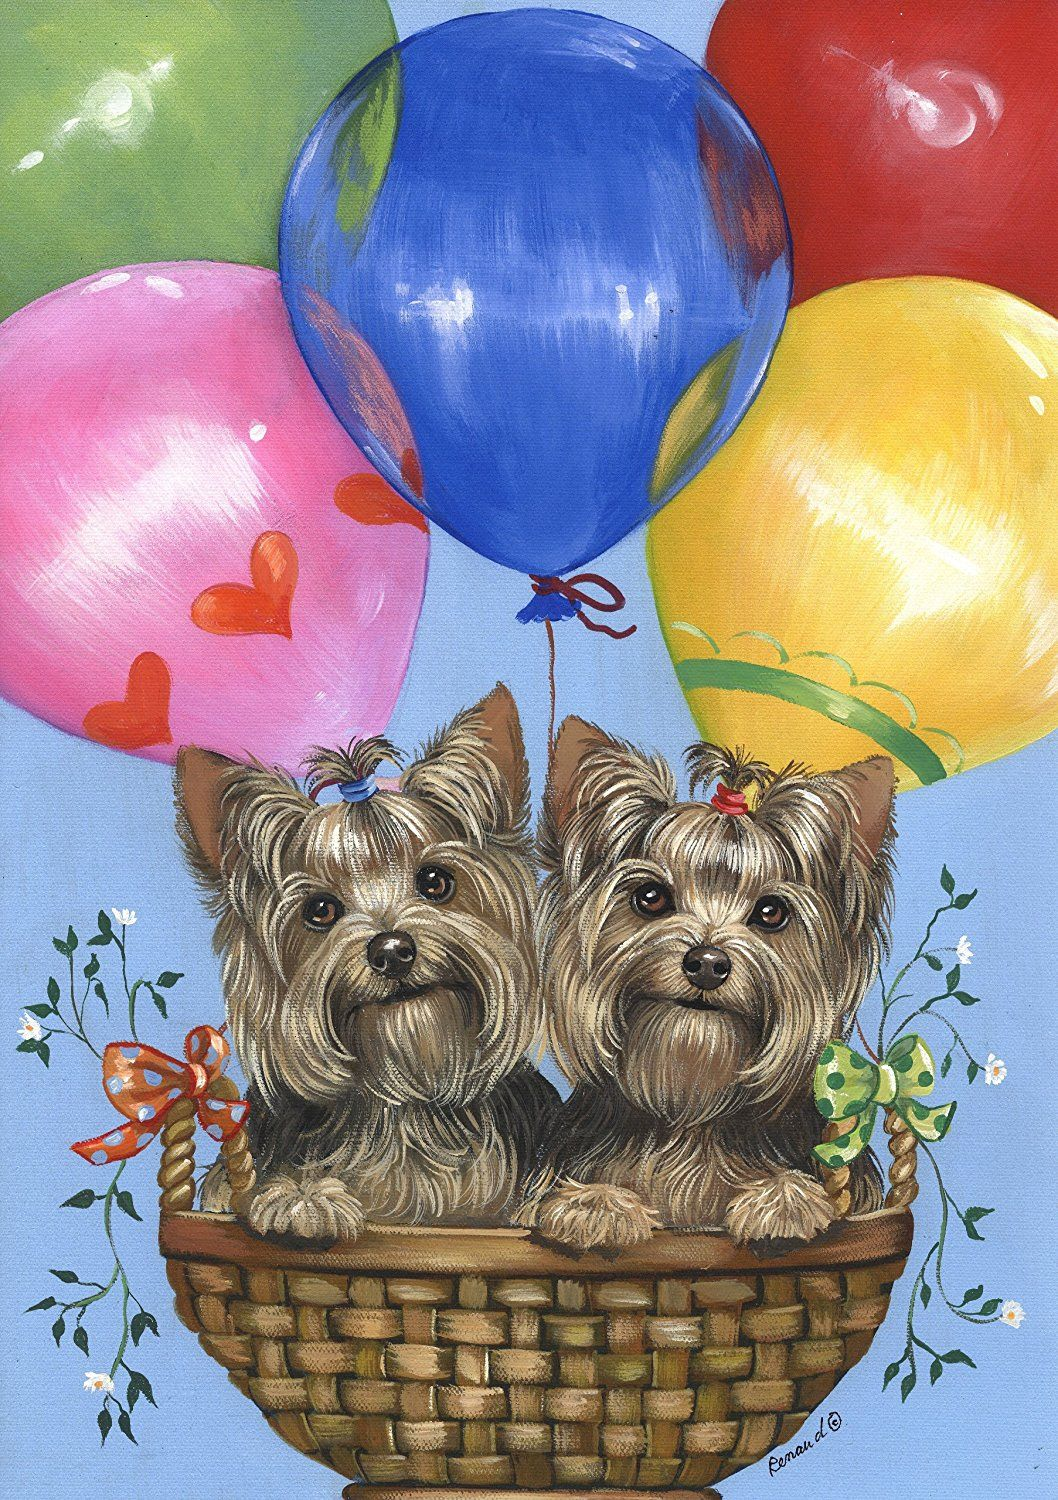 Yorkshire Terrier Balloons by Suzanne Renaud Tiere malen